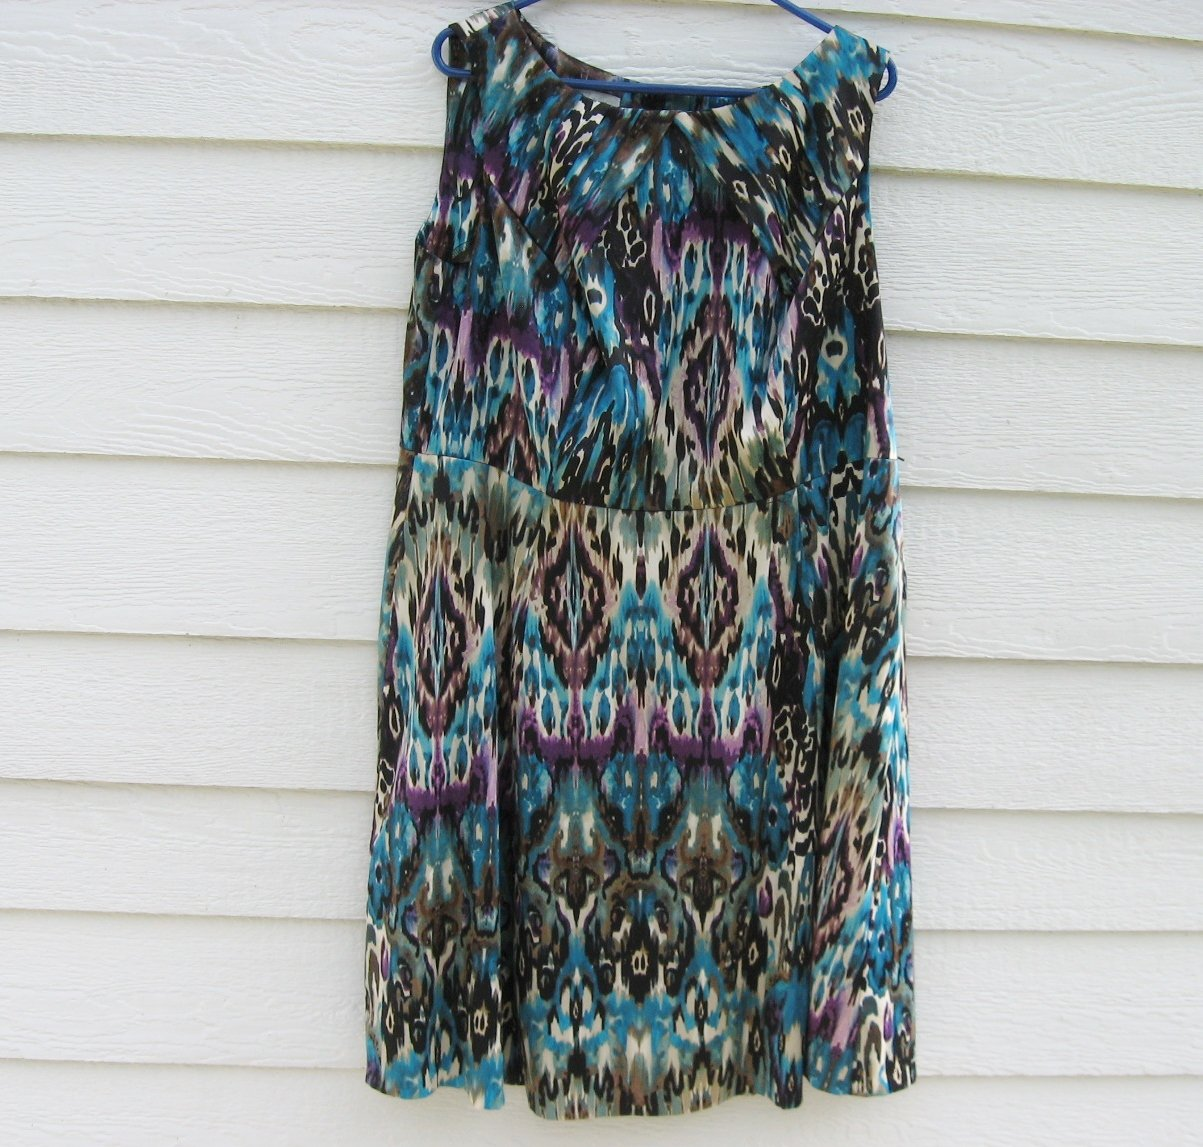 Dressbarn Abstract Print Dress 18W Shiny Blue Sleeveless Pleated Shoulder